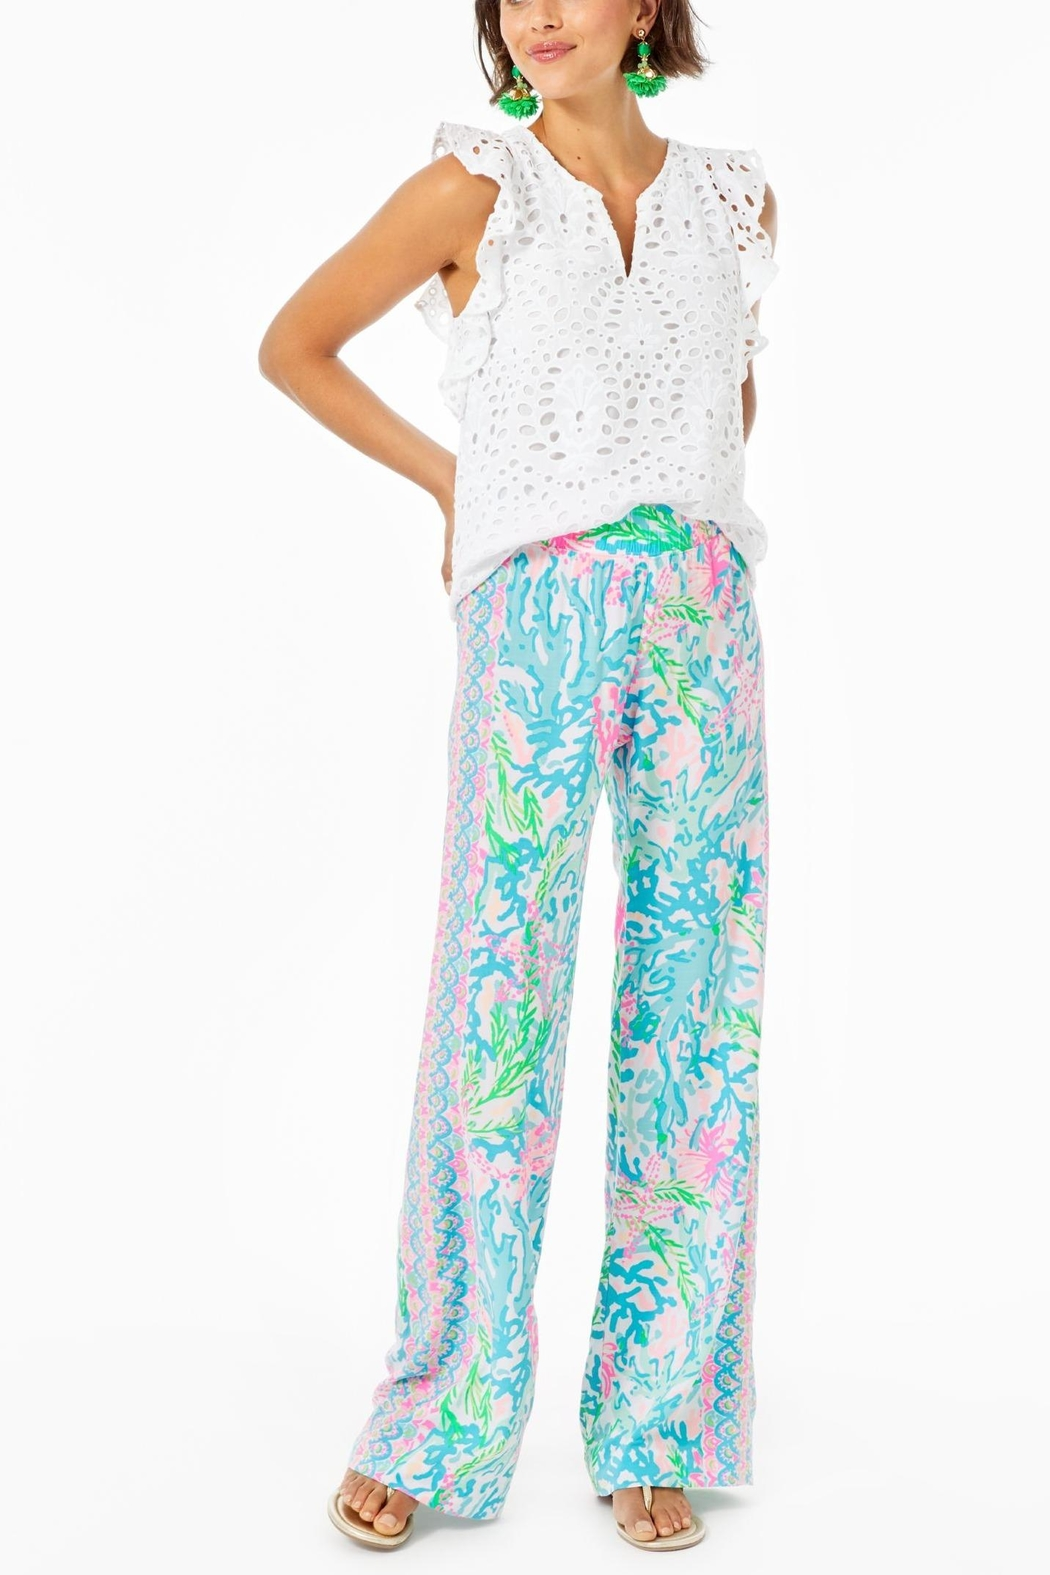 Lilly Pulitzer Faun Top - Back Cropped Image